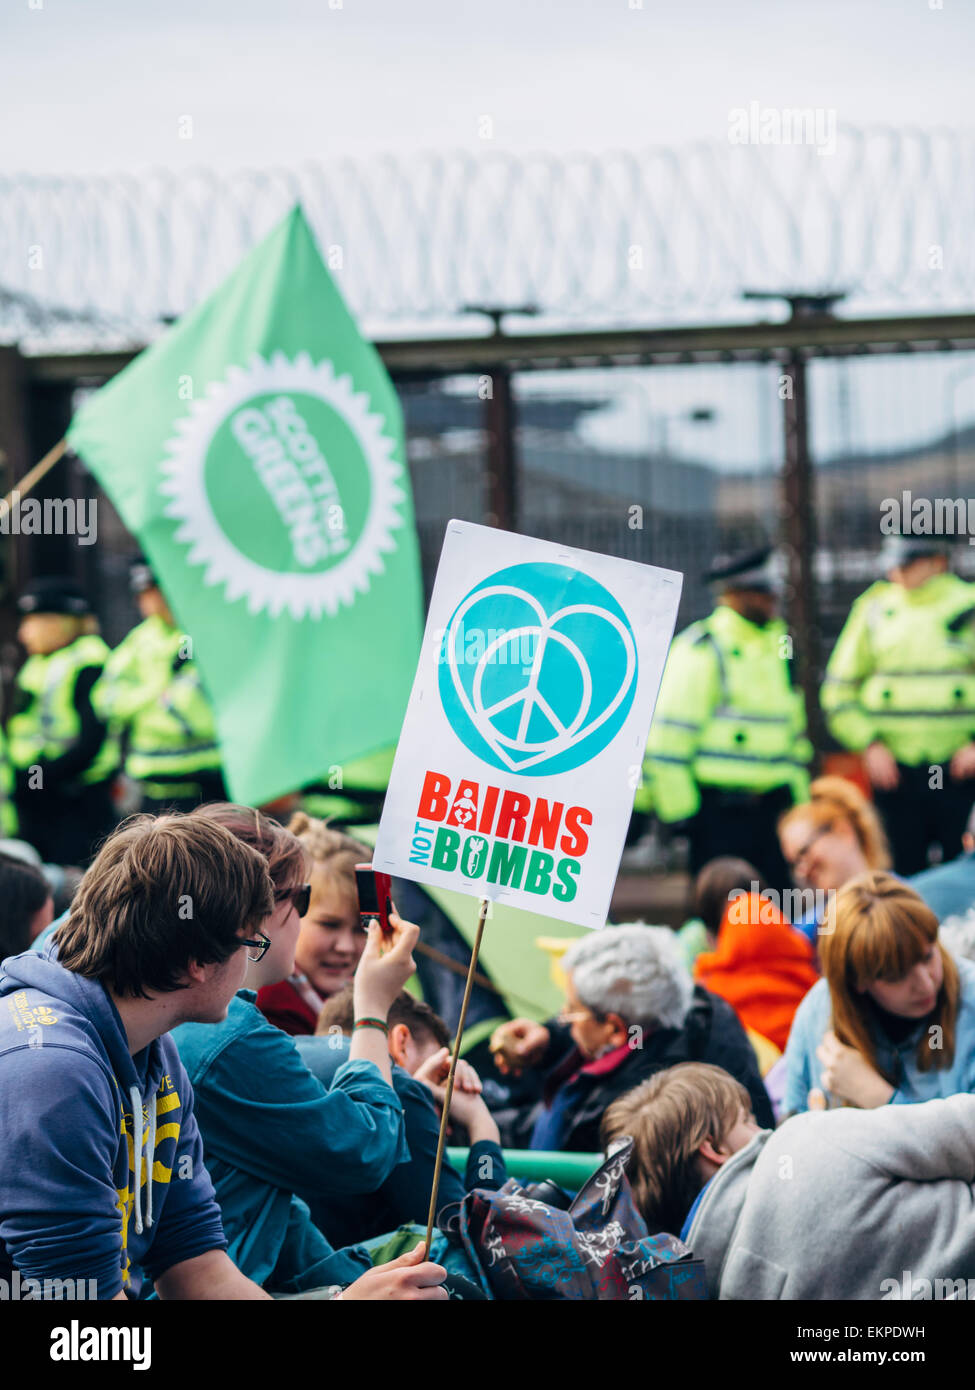 Glasgow, UK. 13th April, 2015. Protestors of all ages gather at Faslane Naval base in Glasgow to capmpaign against - Stock Image